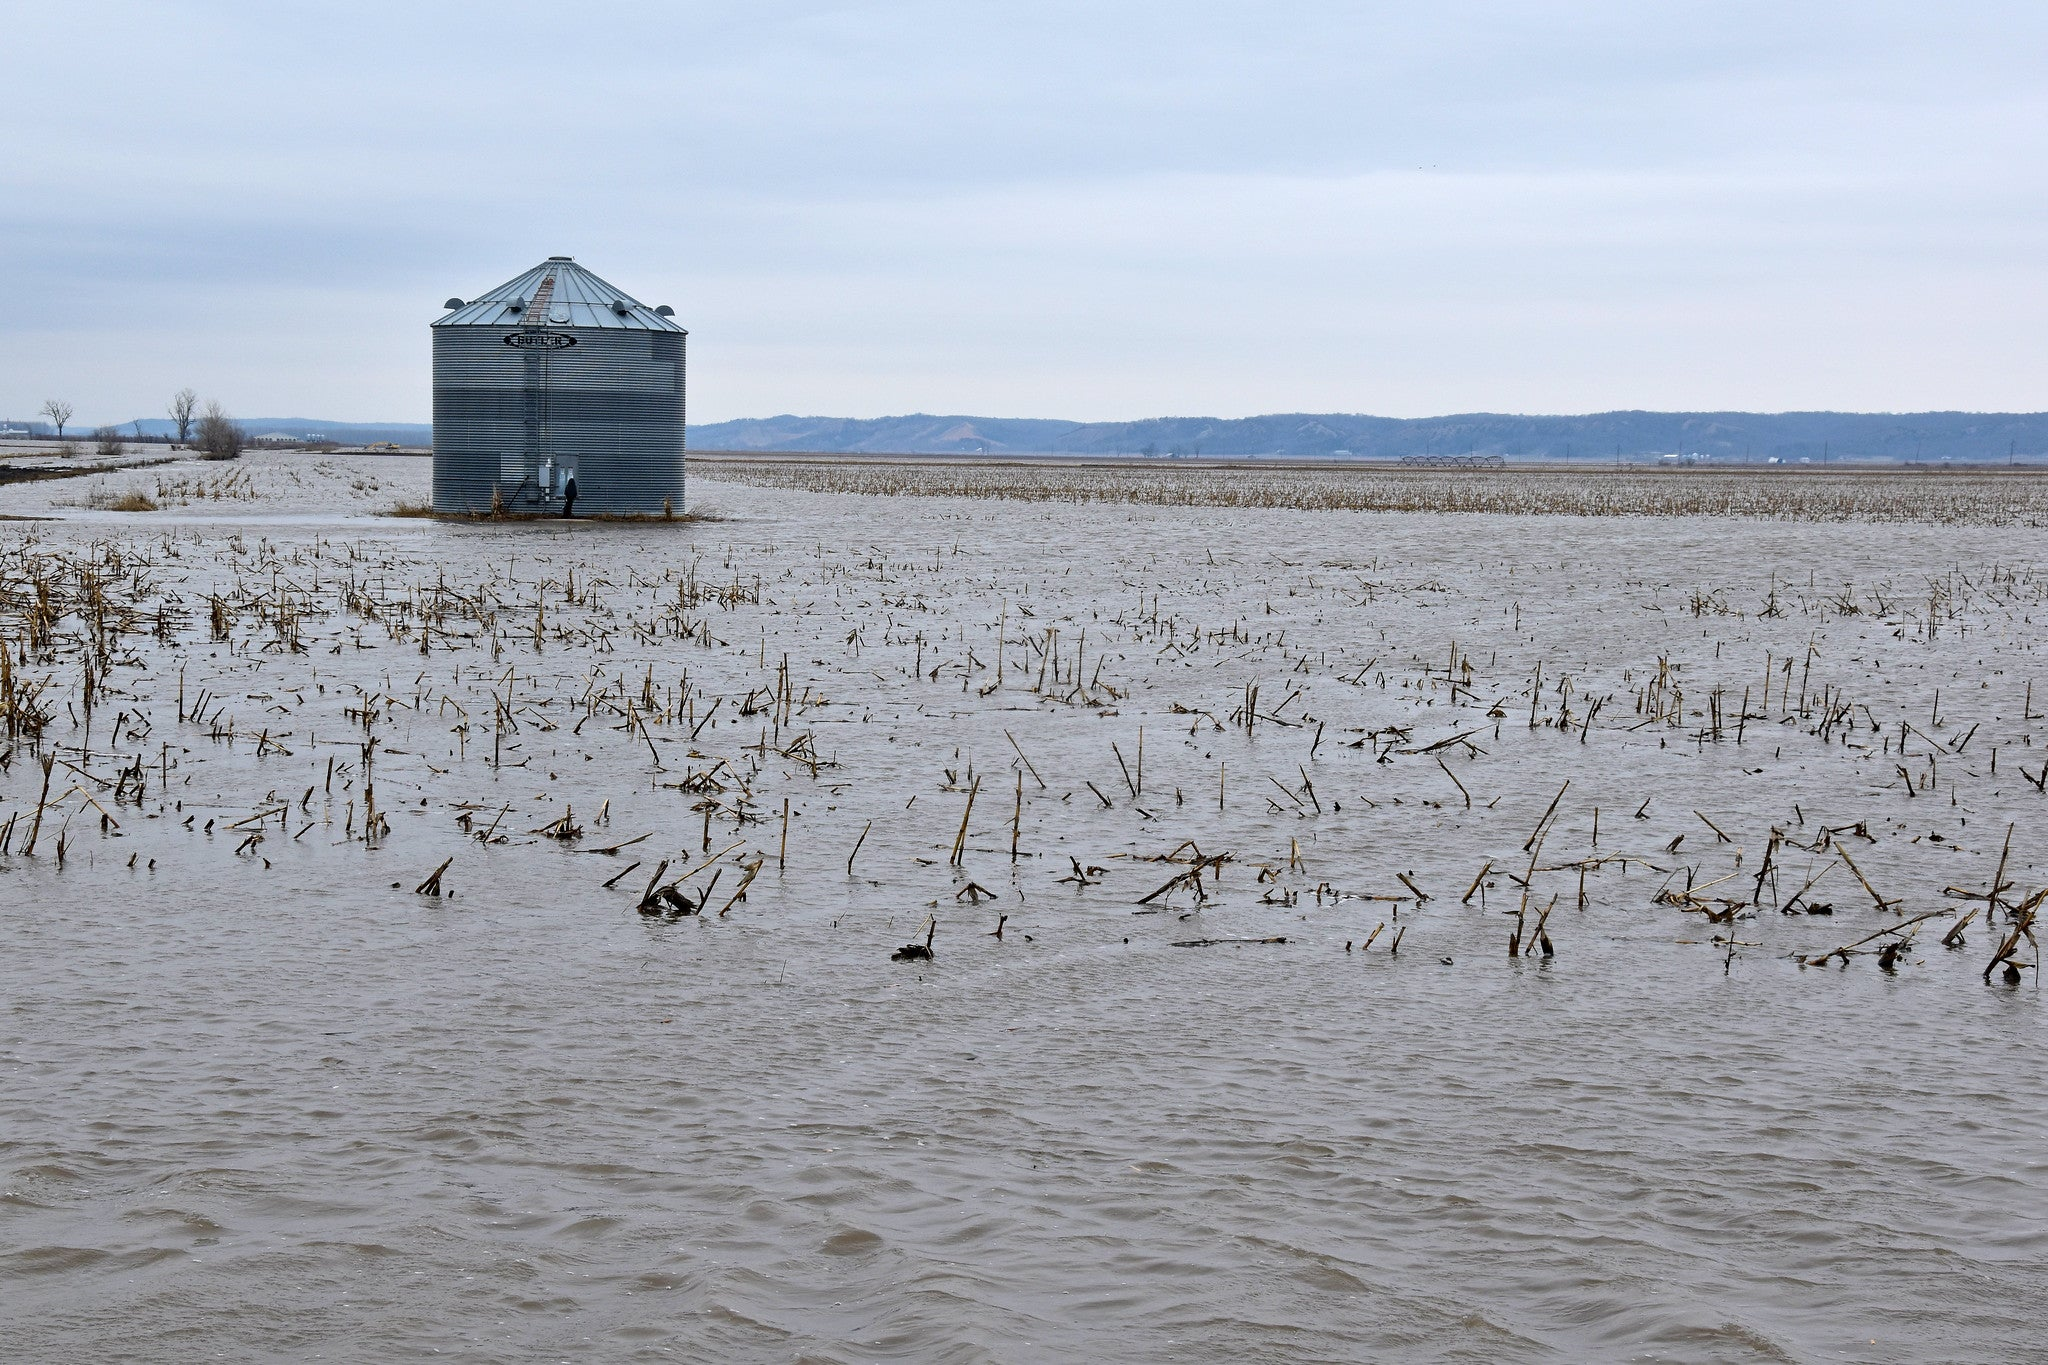 flooded field with silo in background